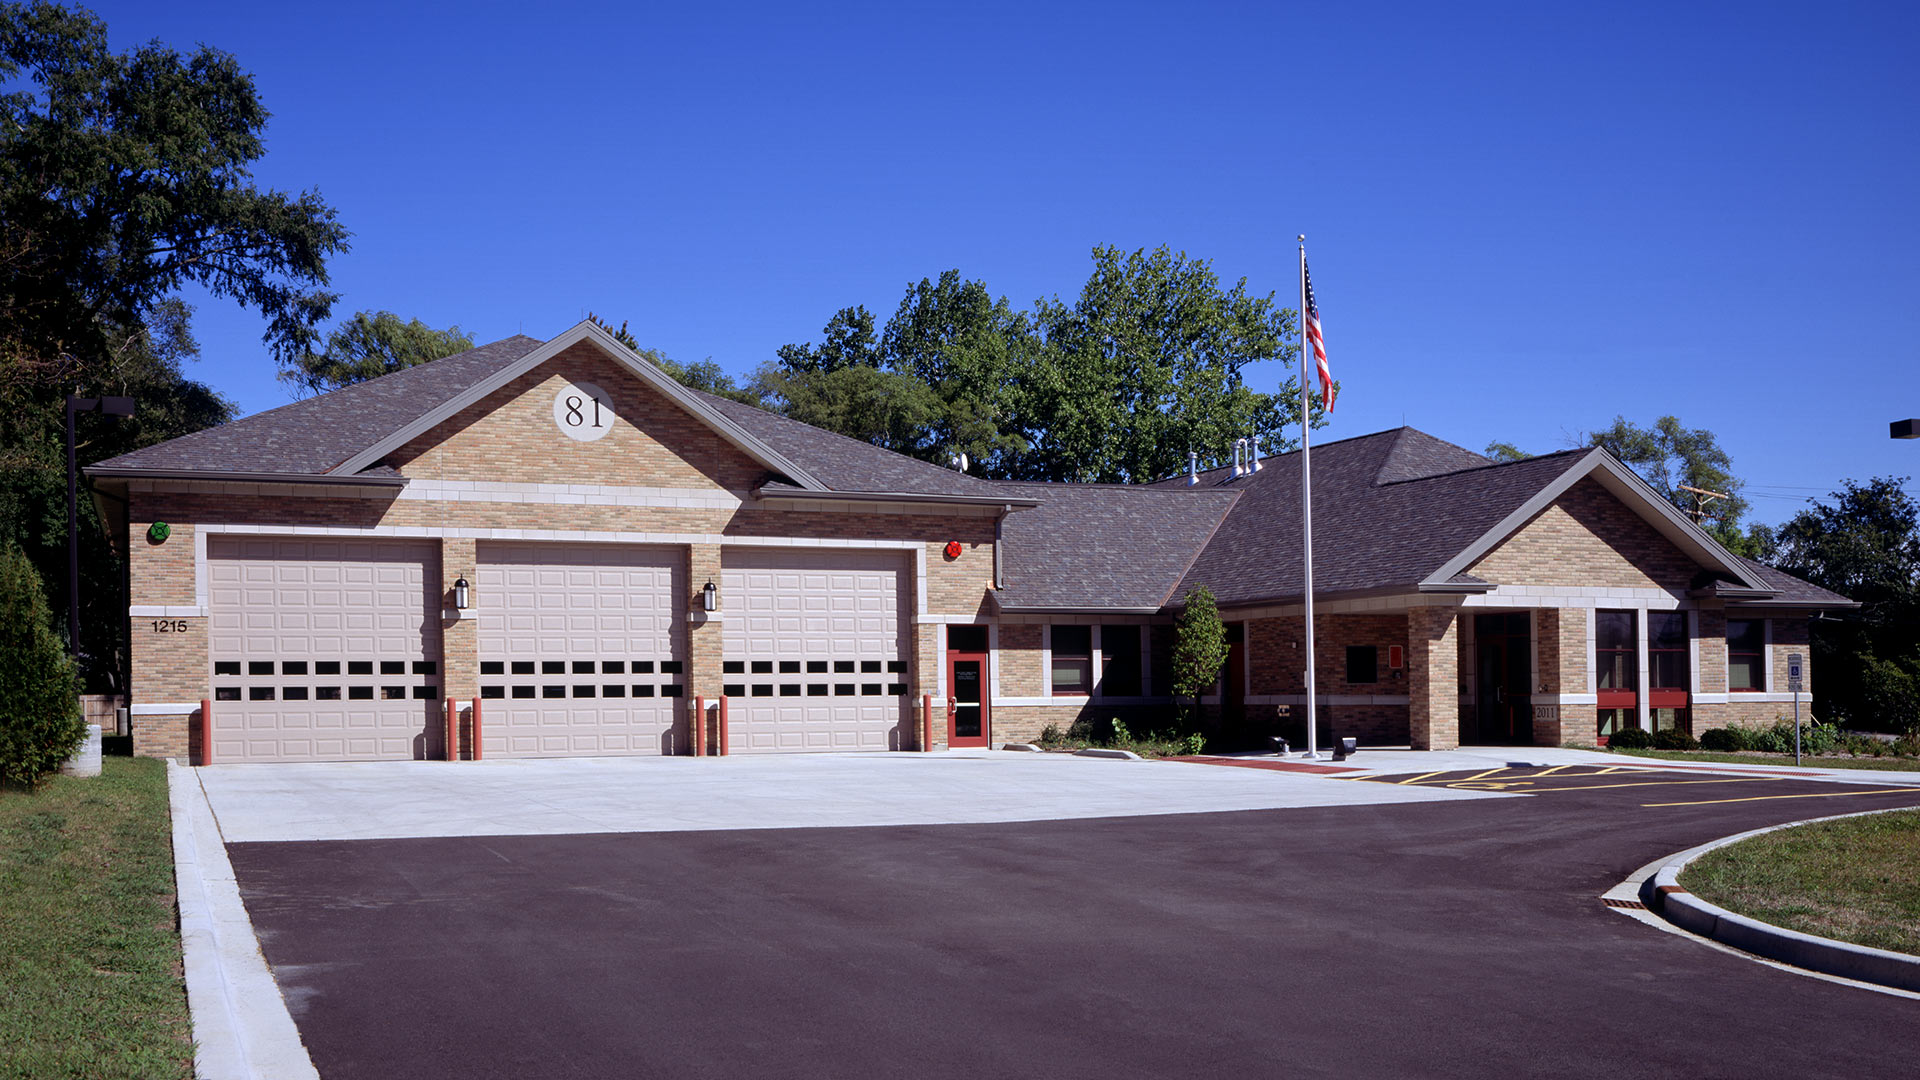 Village of Palatine Fire Department